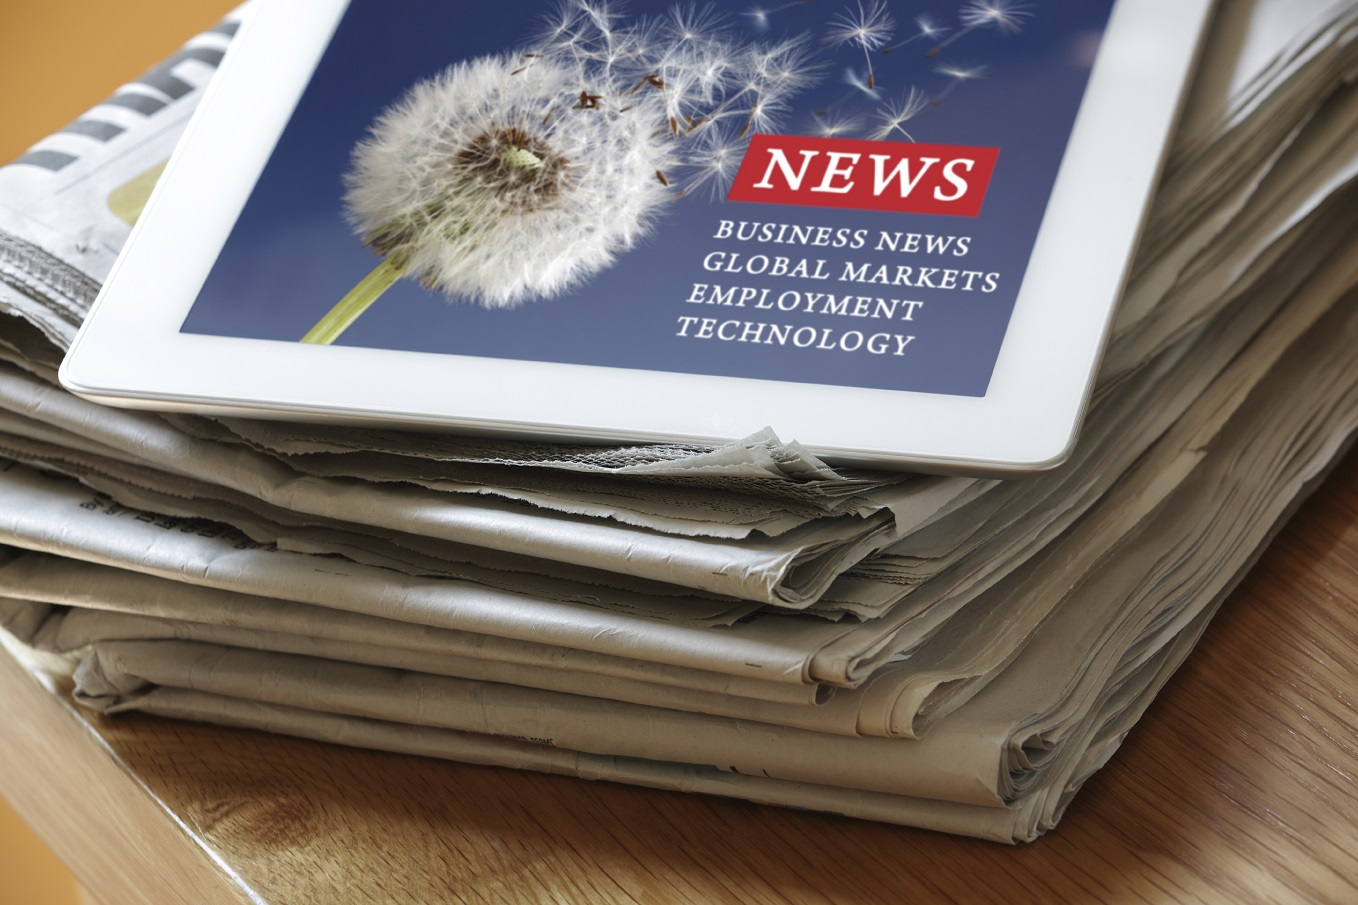 What Are The Significant Problems Of The Digital Newspaper